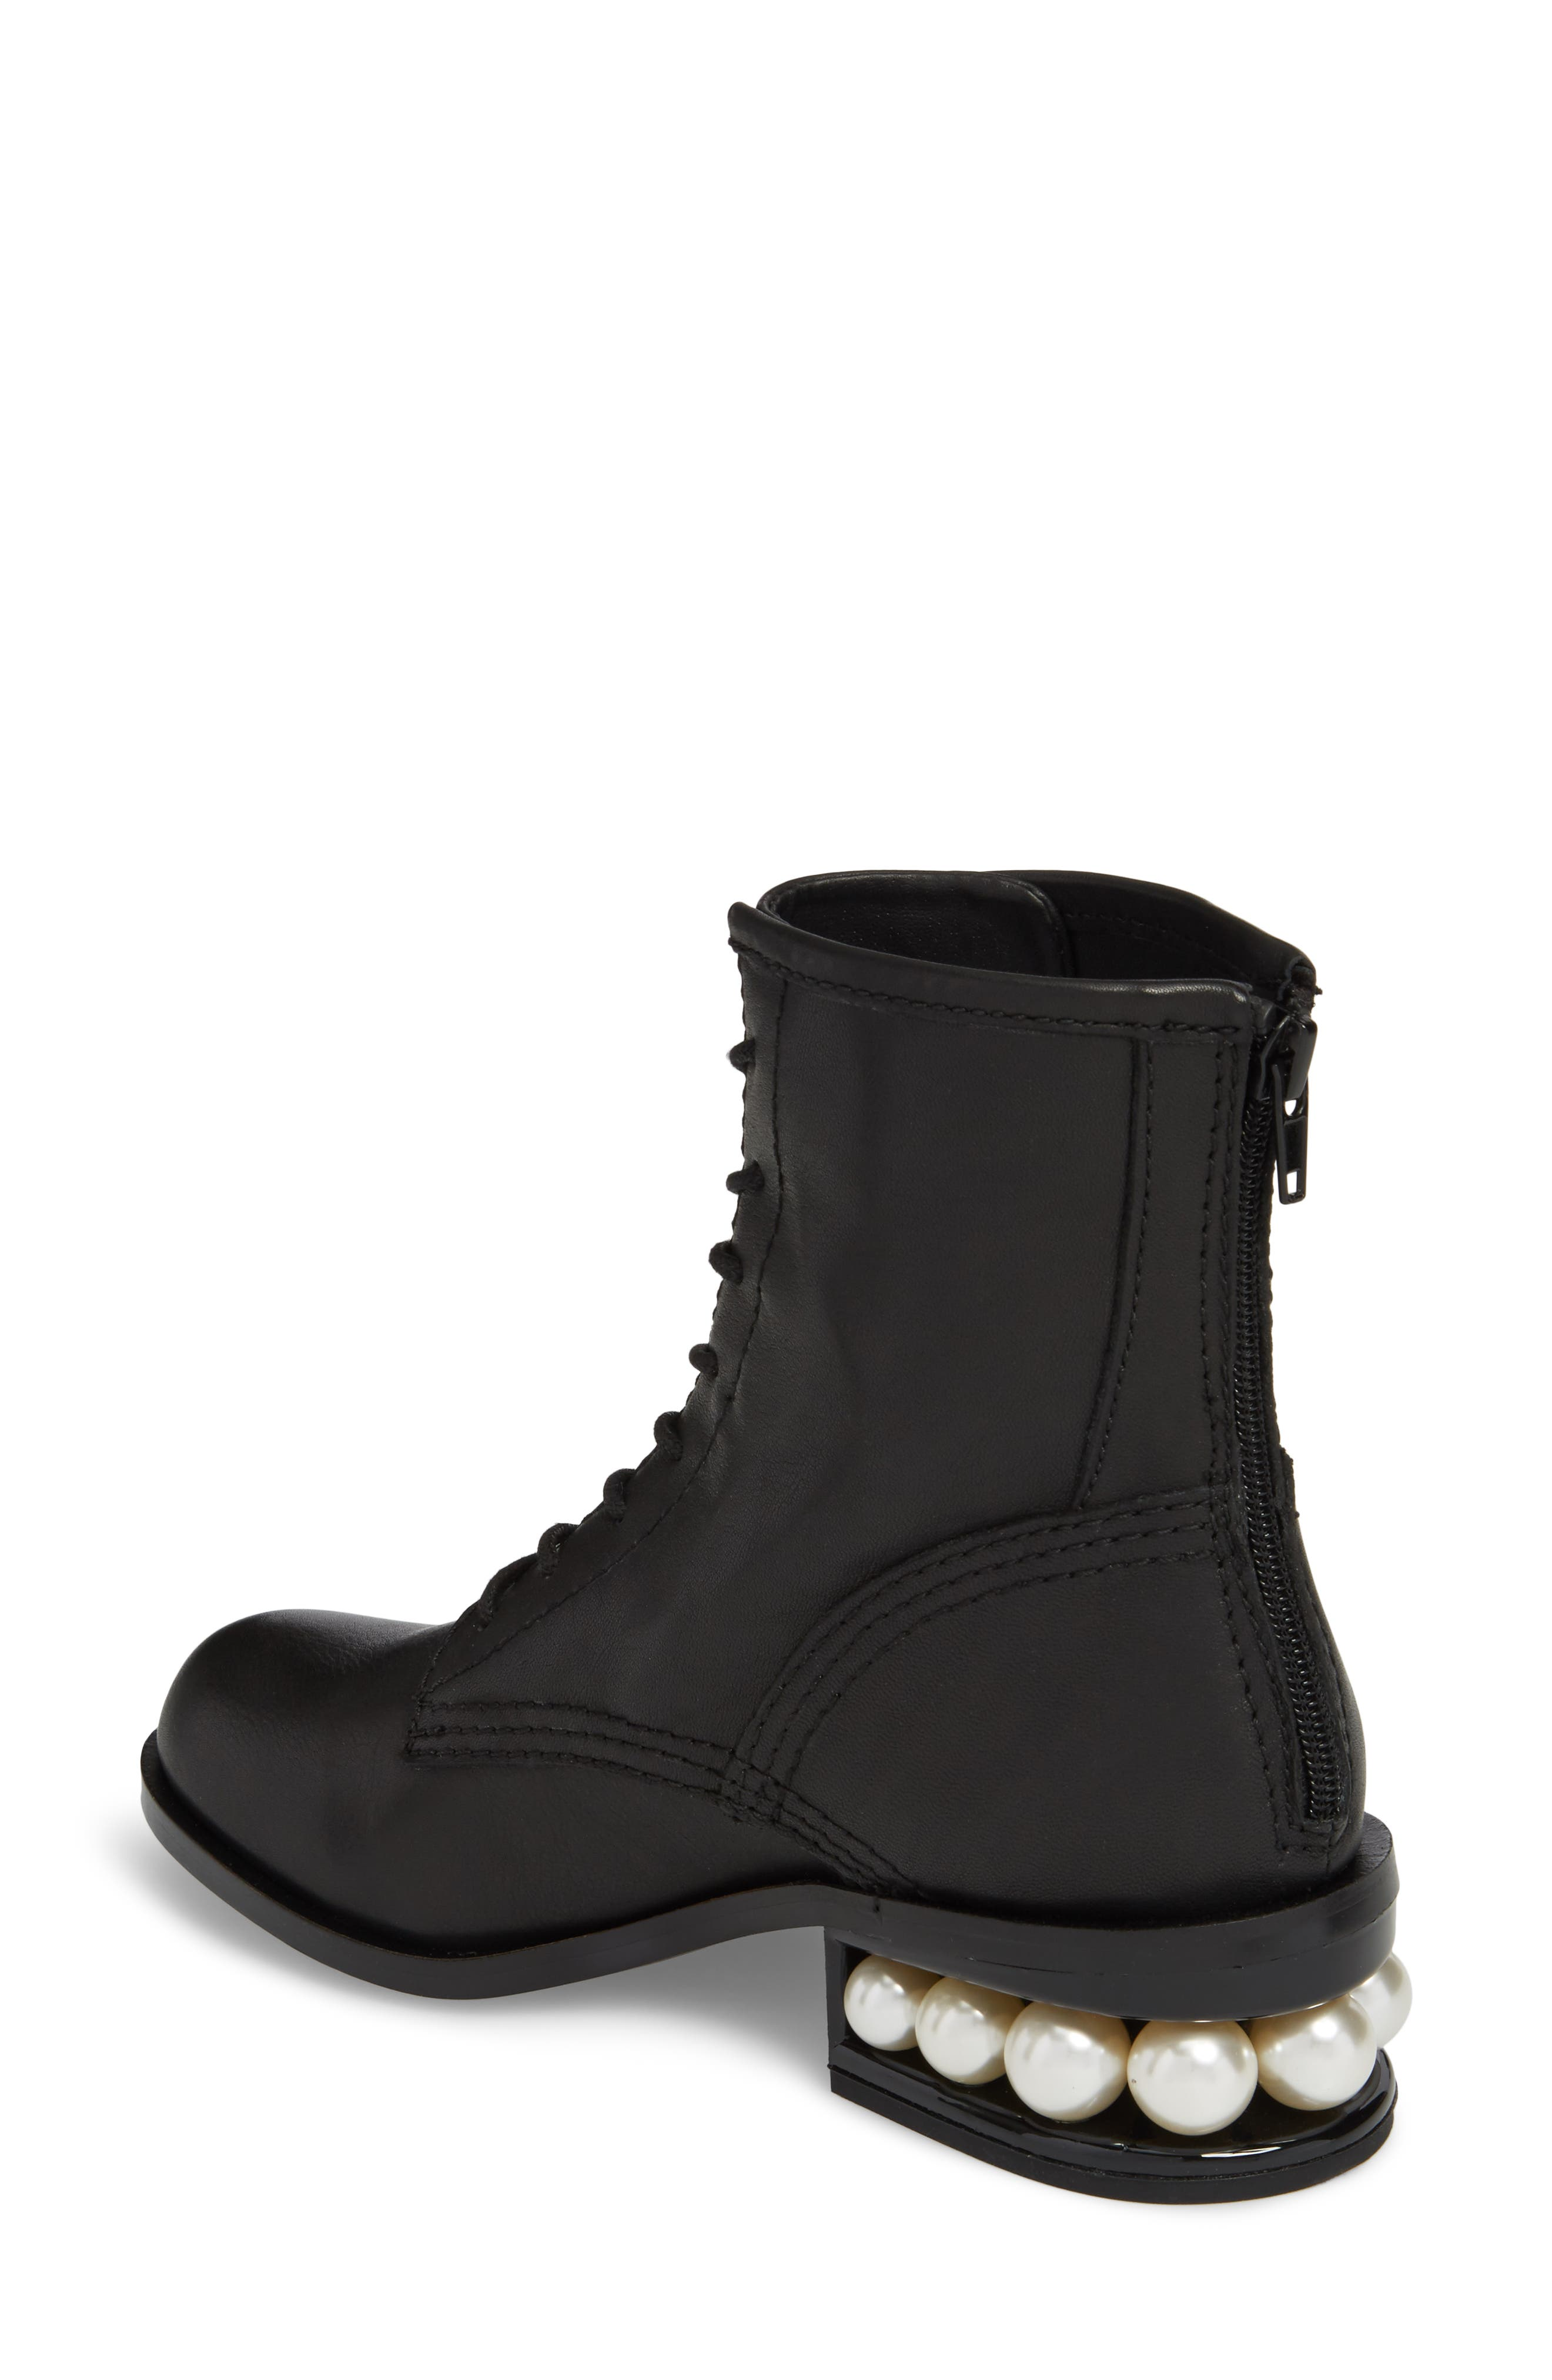 Pixy Statement Heel Boot,                             Alternate thumbnail 2, color,                             Black Leather